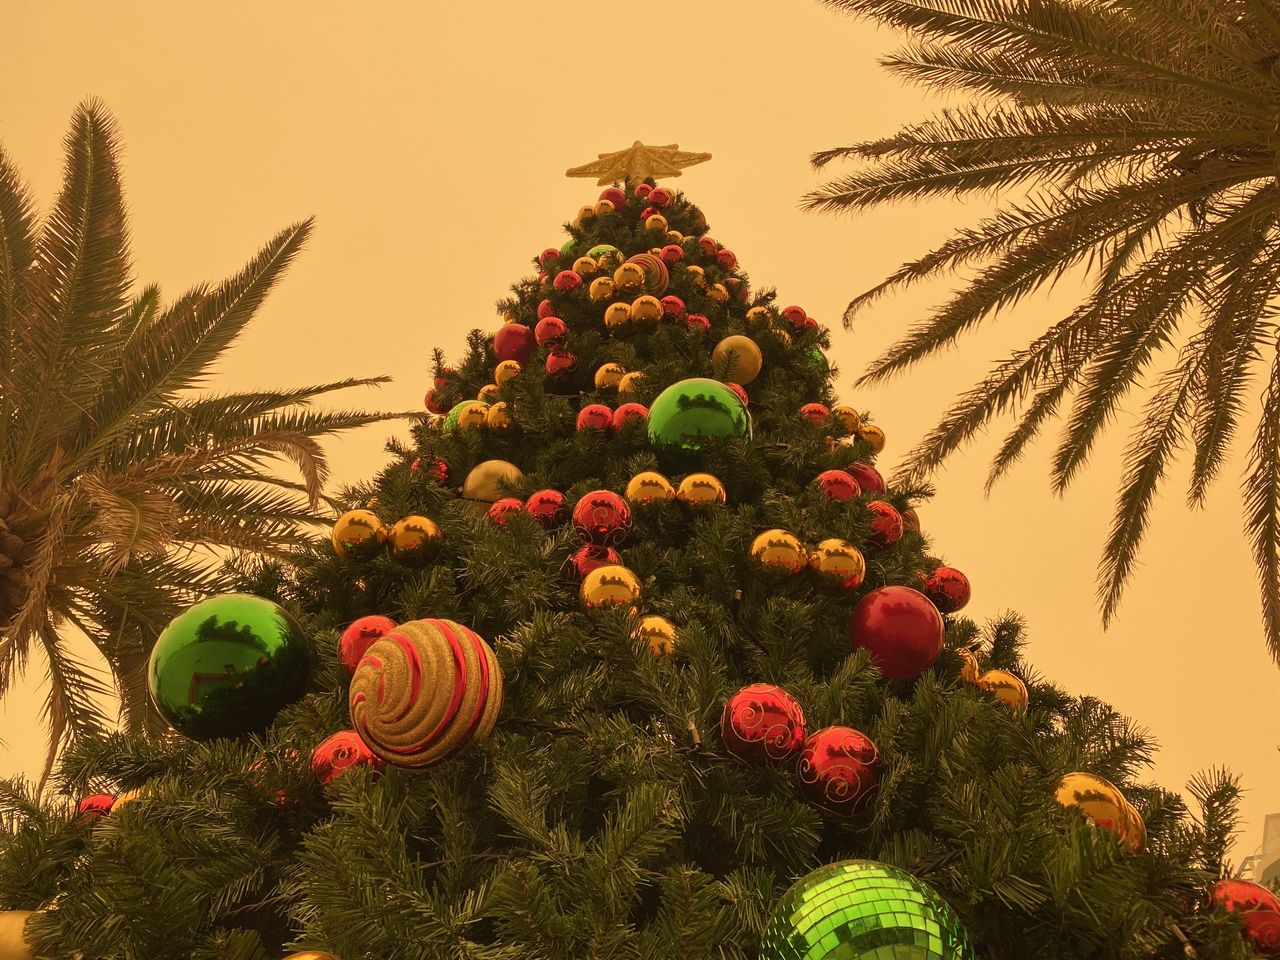 plant, tree, sky, nature, celebration, growth, green color, no people, beauty in nature, decoration, christmas decoration, land, outdoors, day, christmas, palm tree, sunset, freshness, holiday, christmas ornament